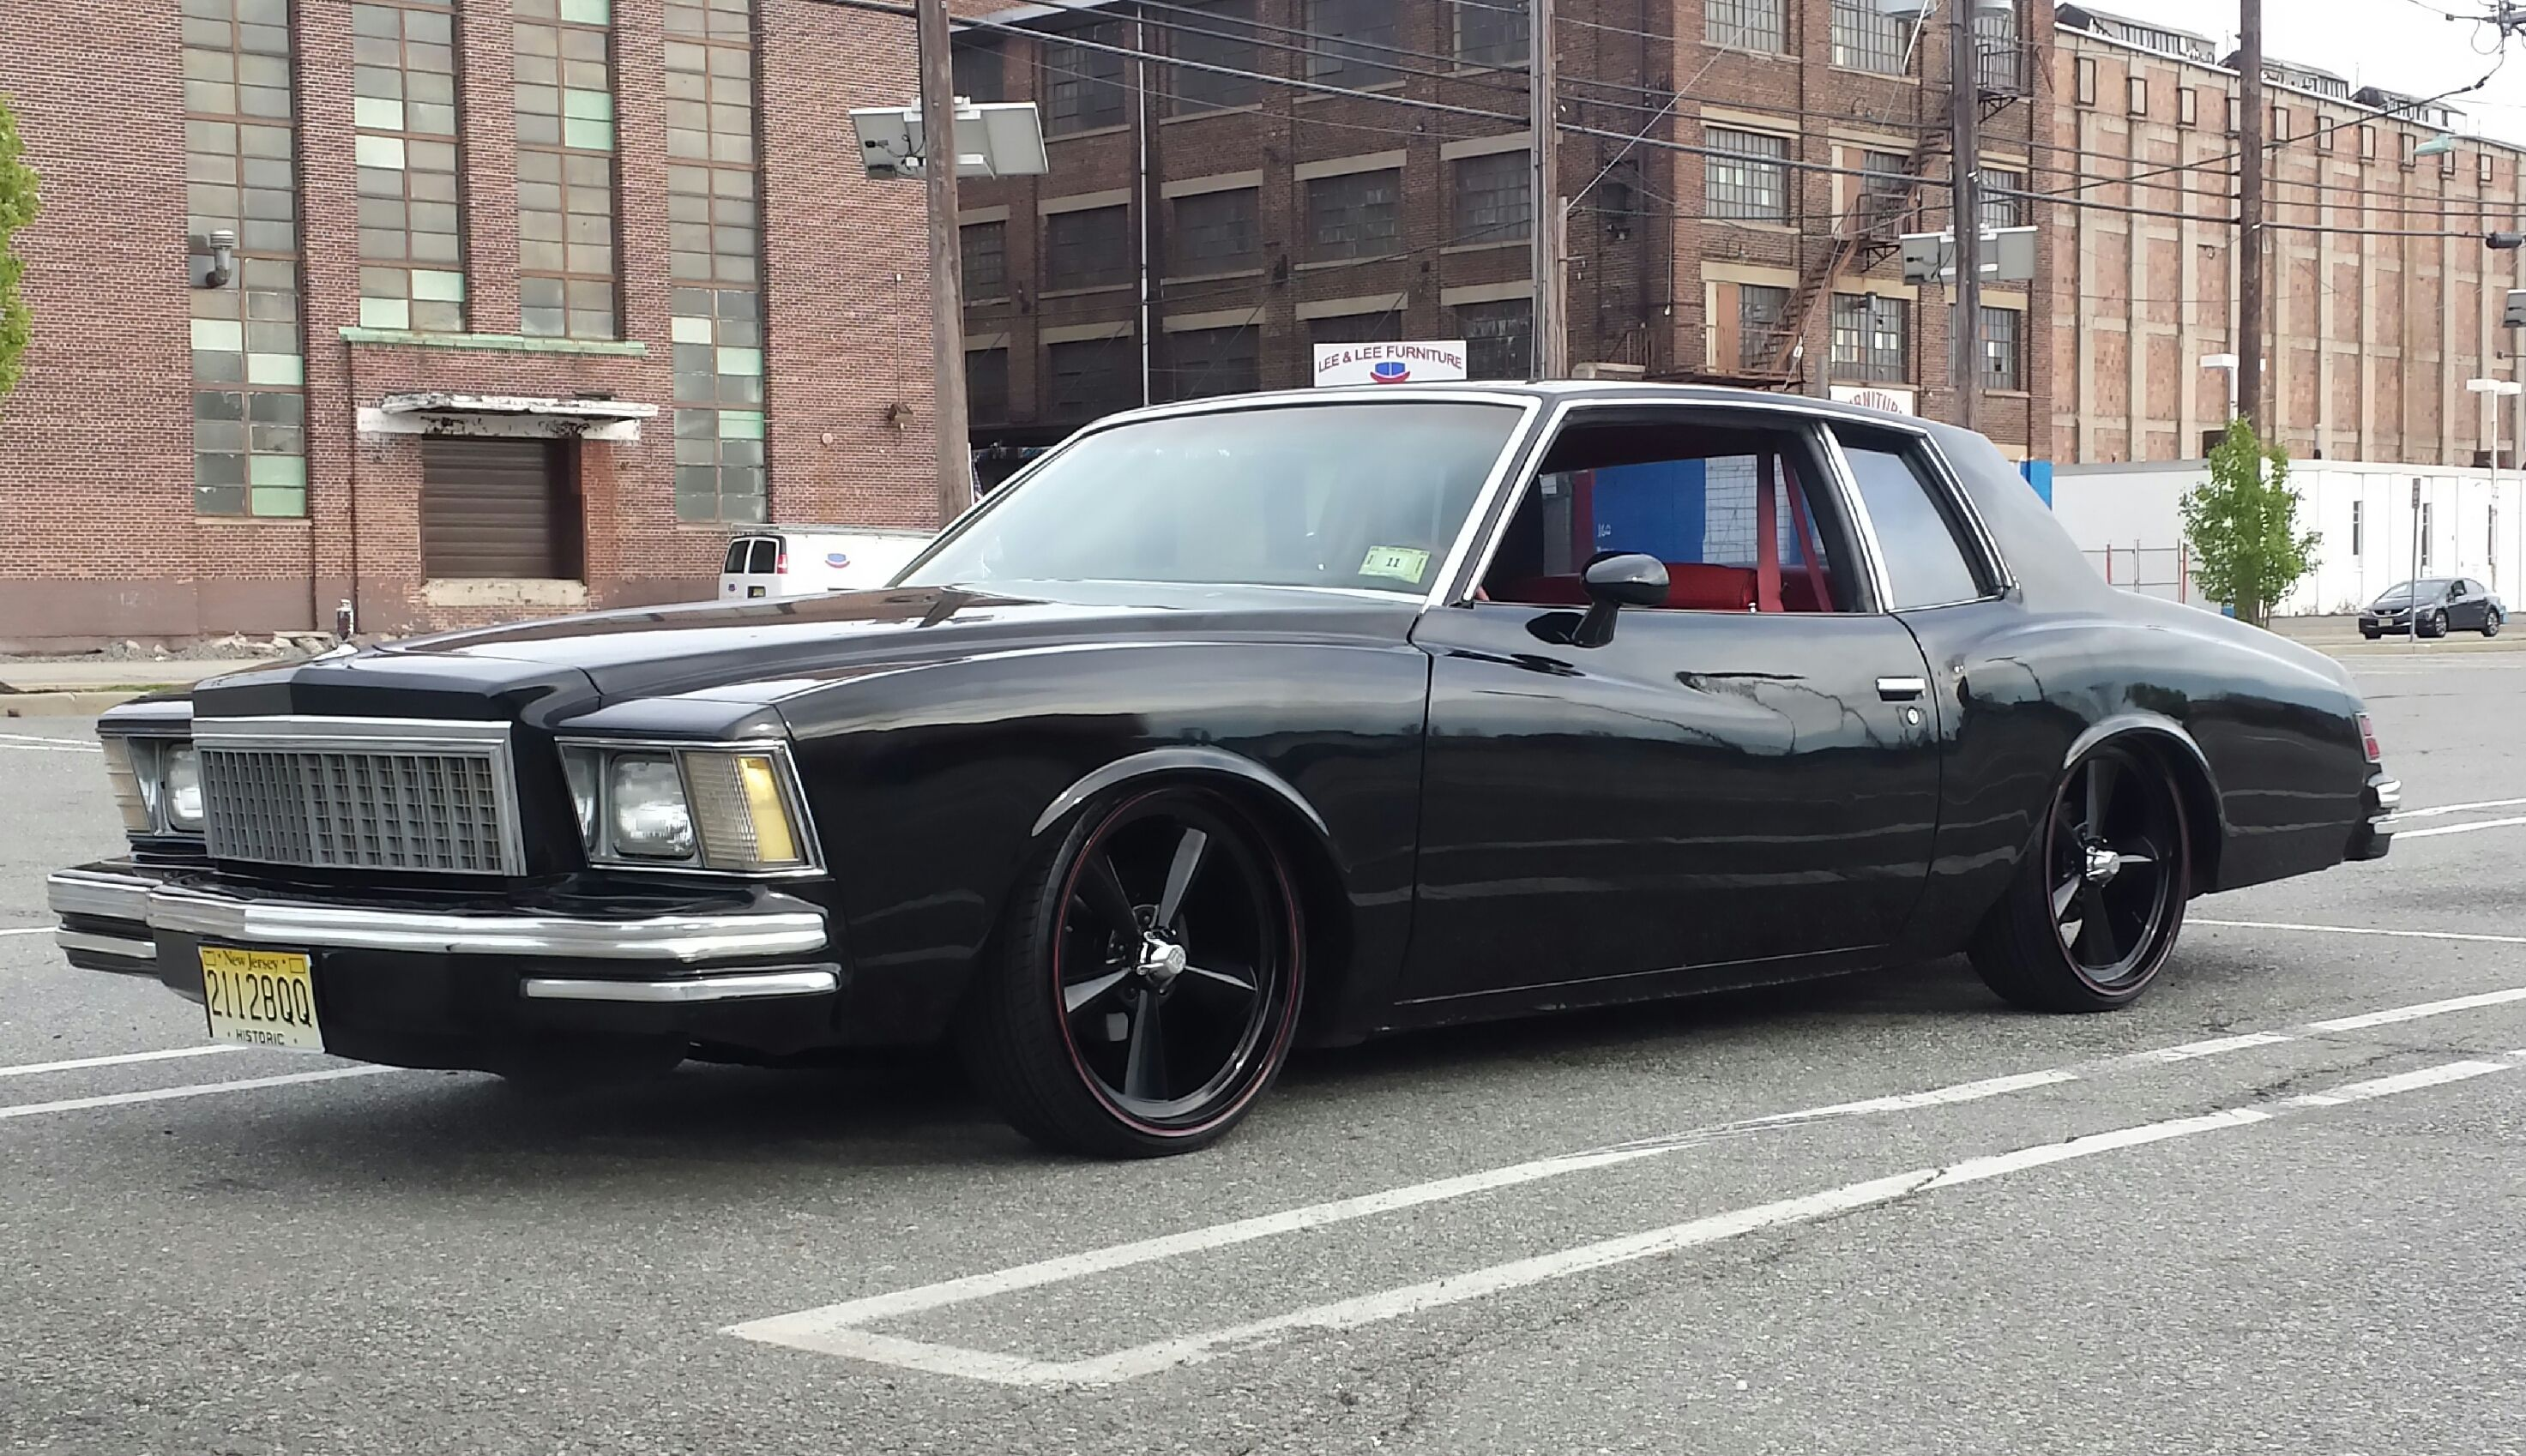 The_office 1979 chevrolet monte carlo 19056541